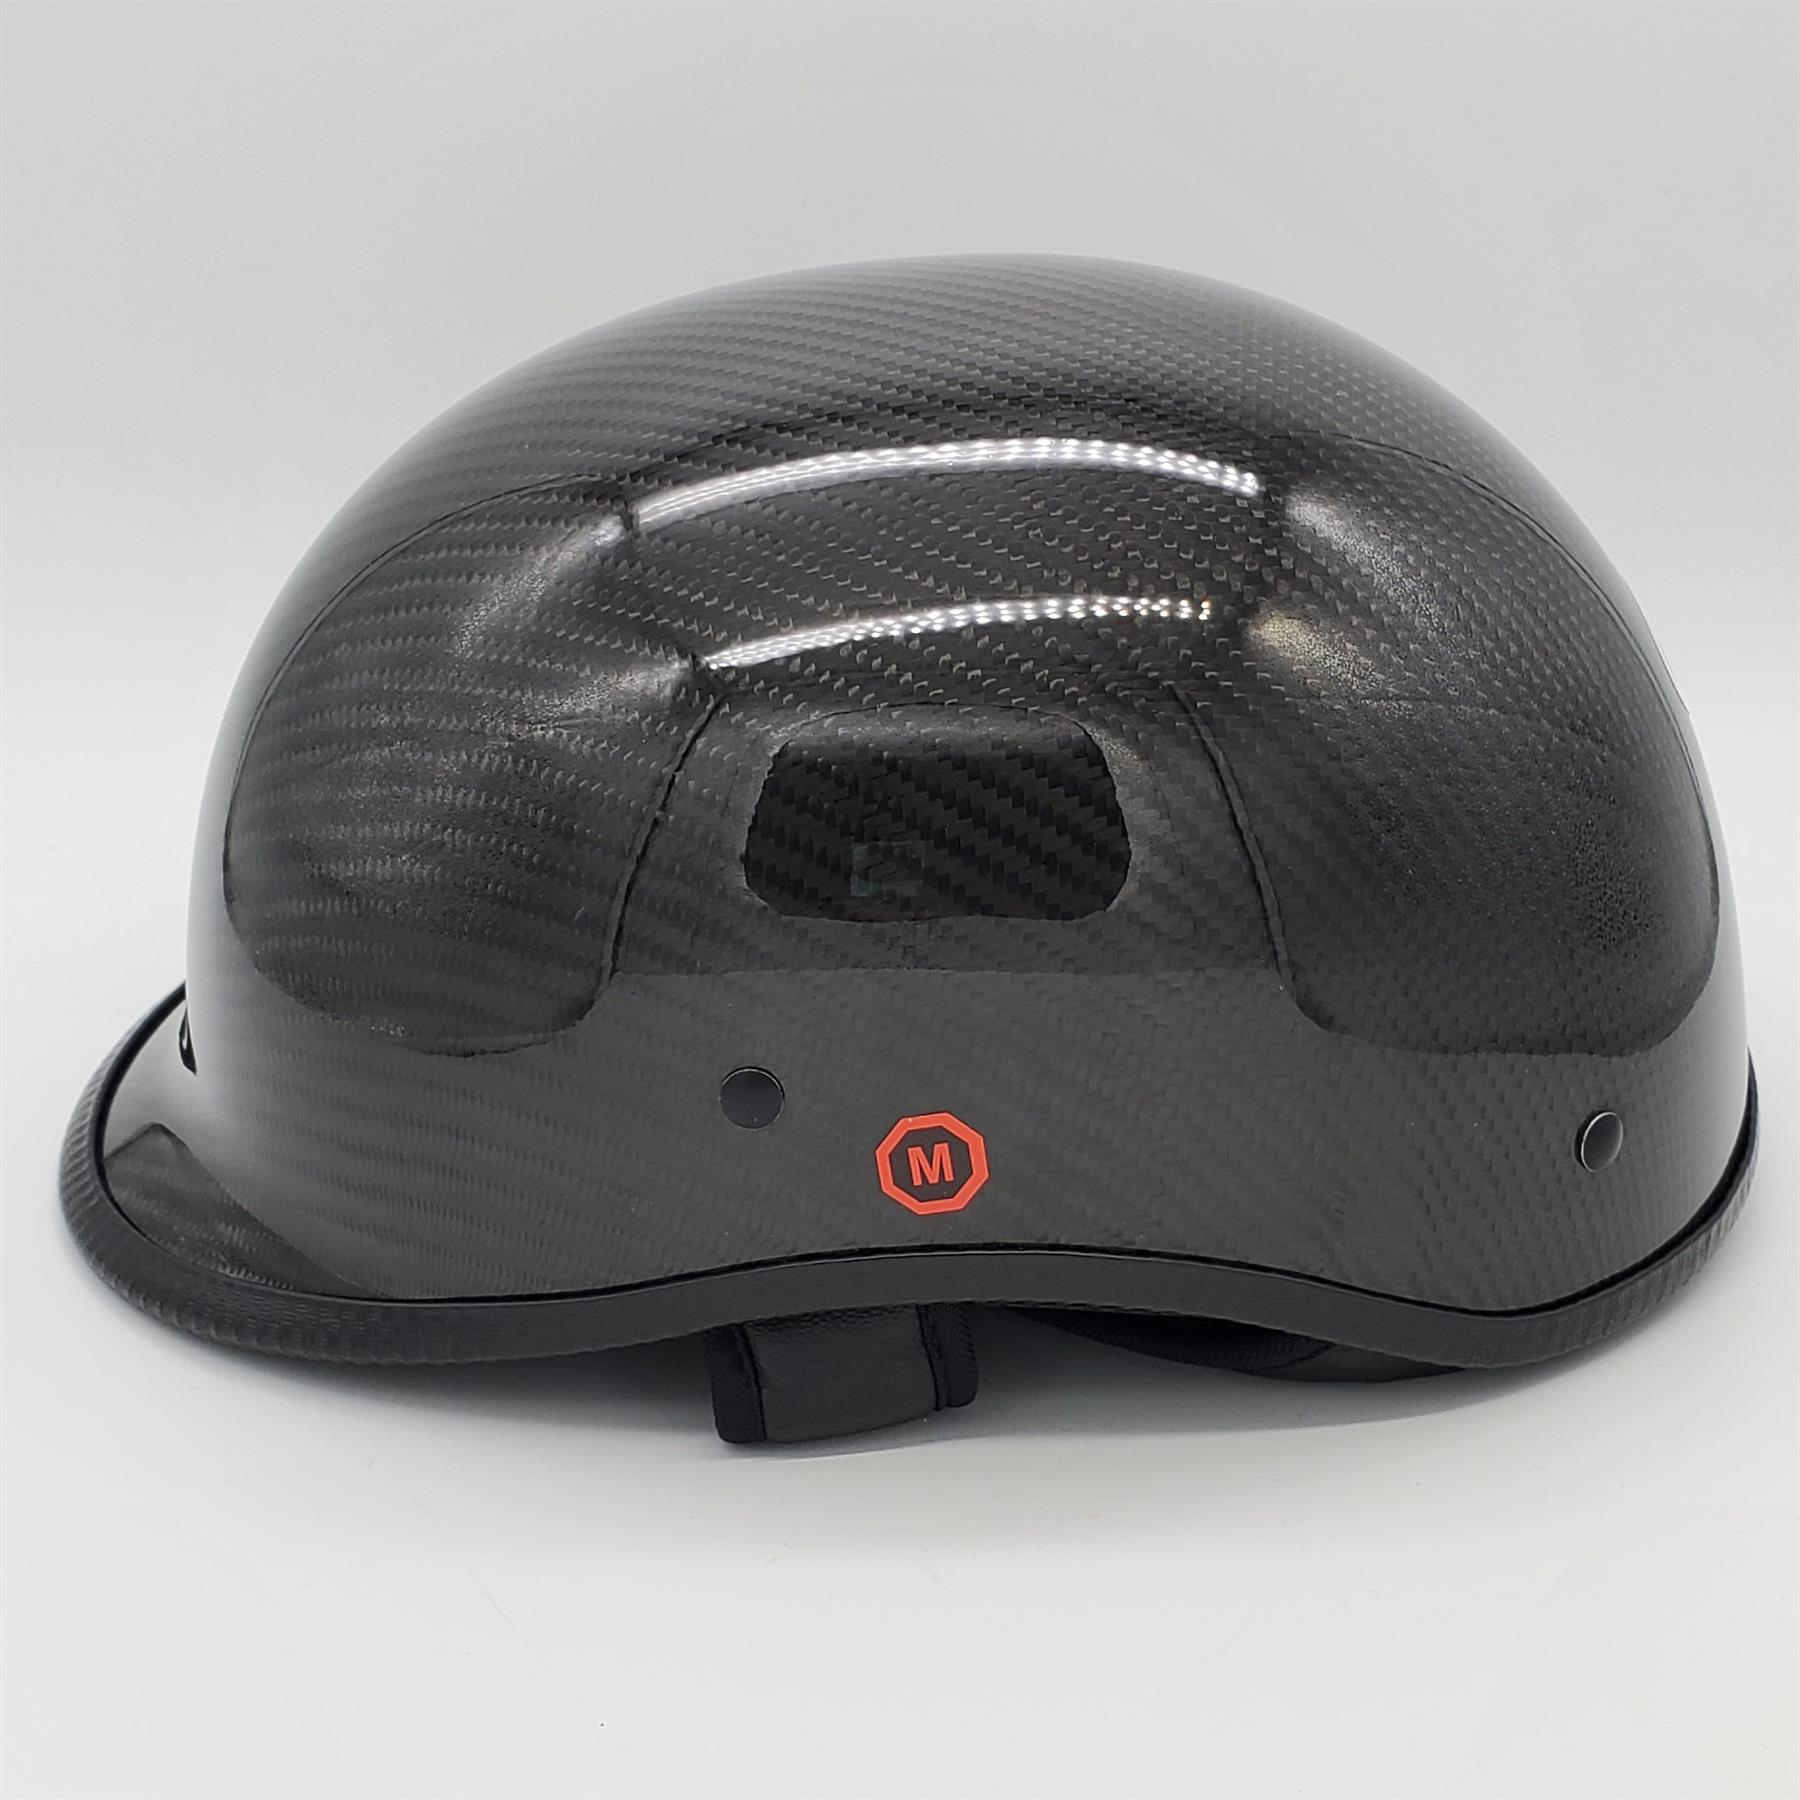 miniature 9 - HCI 105 Polo Style Half Motorcycle Helmet DOT Approved XS S M L XL 2XL